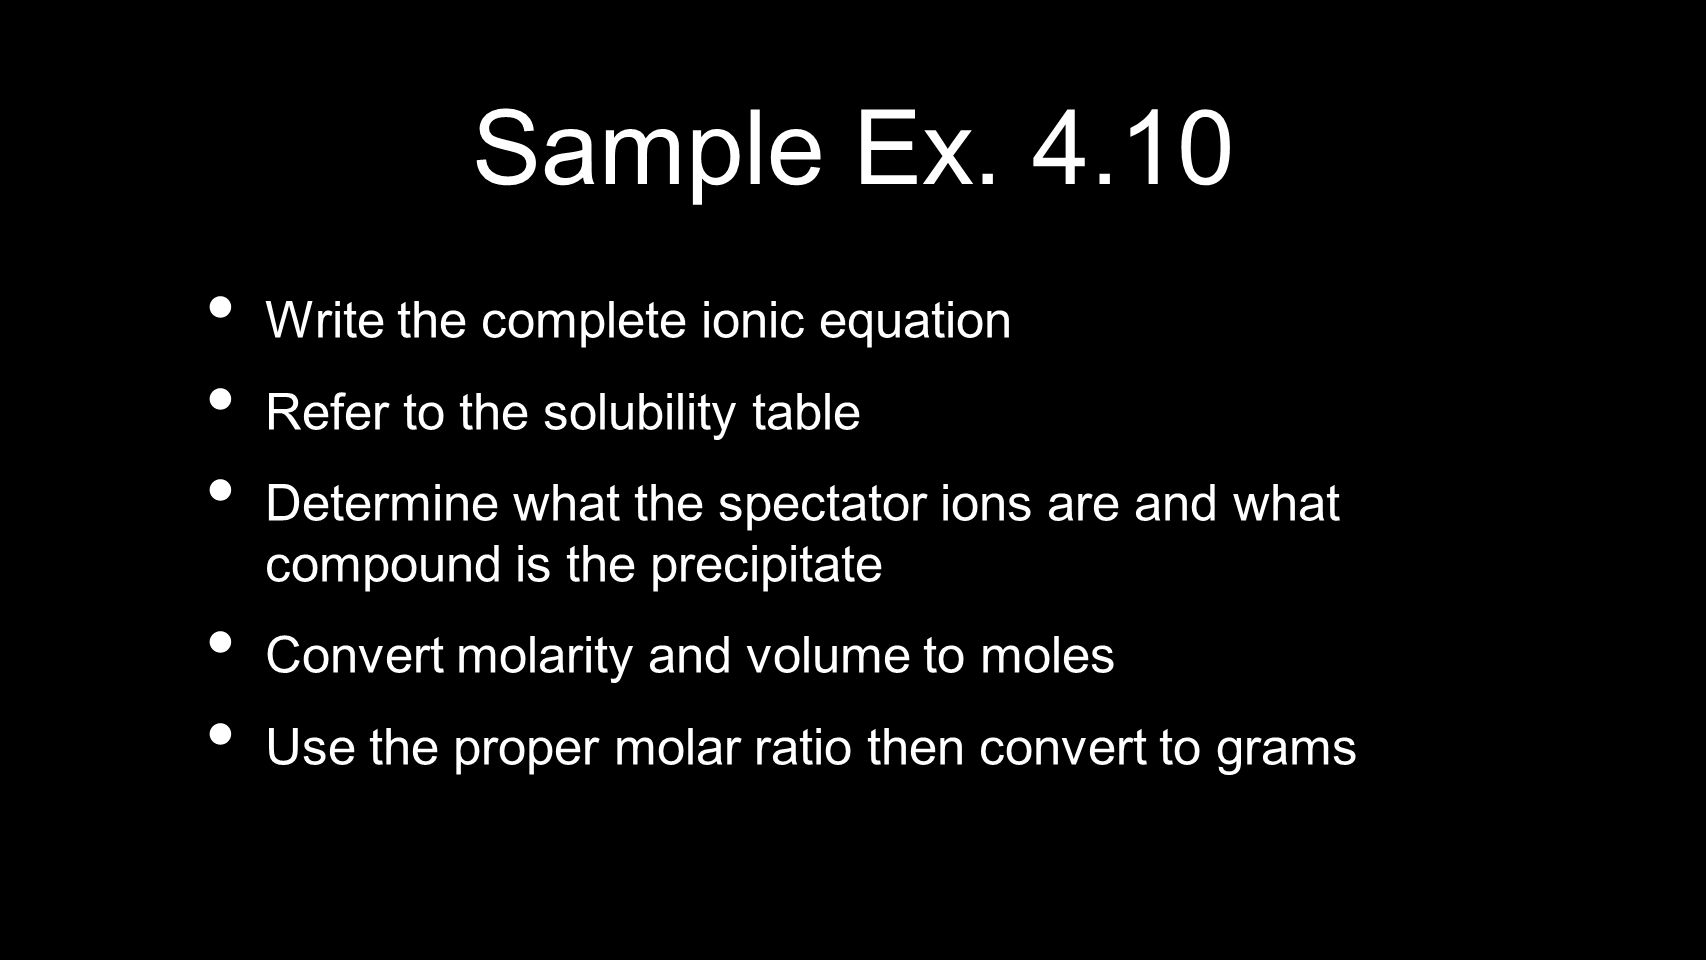 Sample Ex. 4.10 Write the complete ionic equation